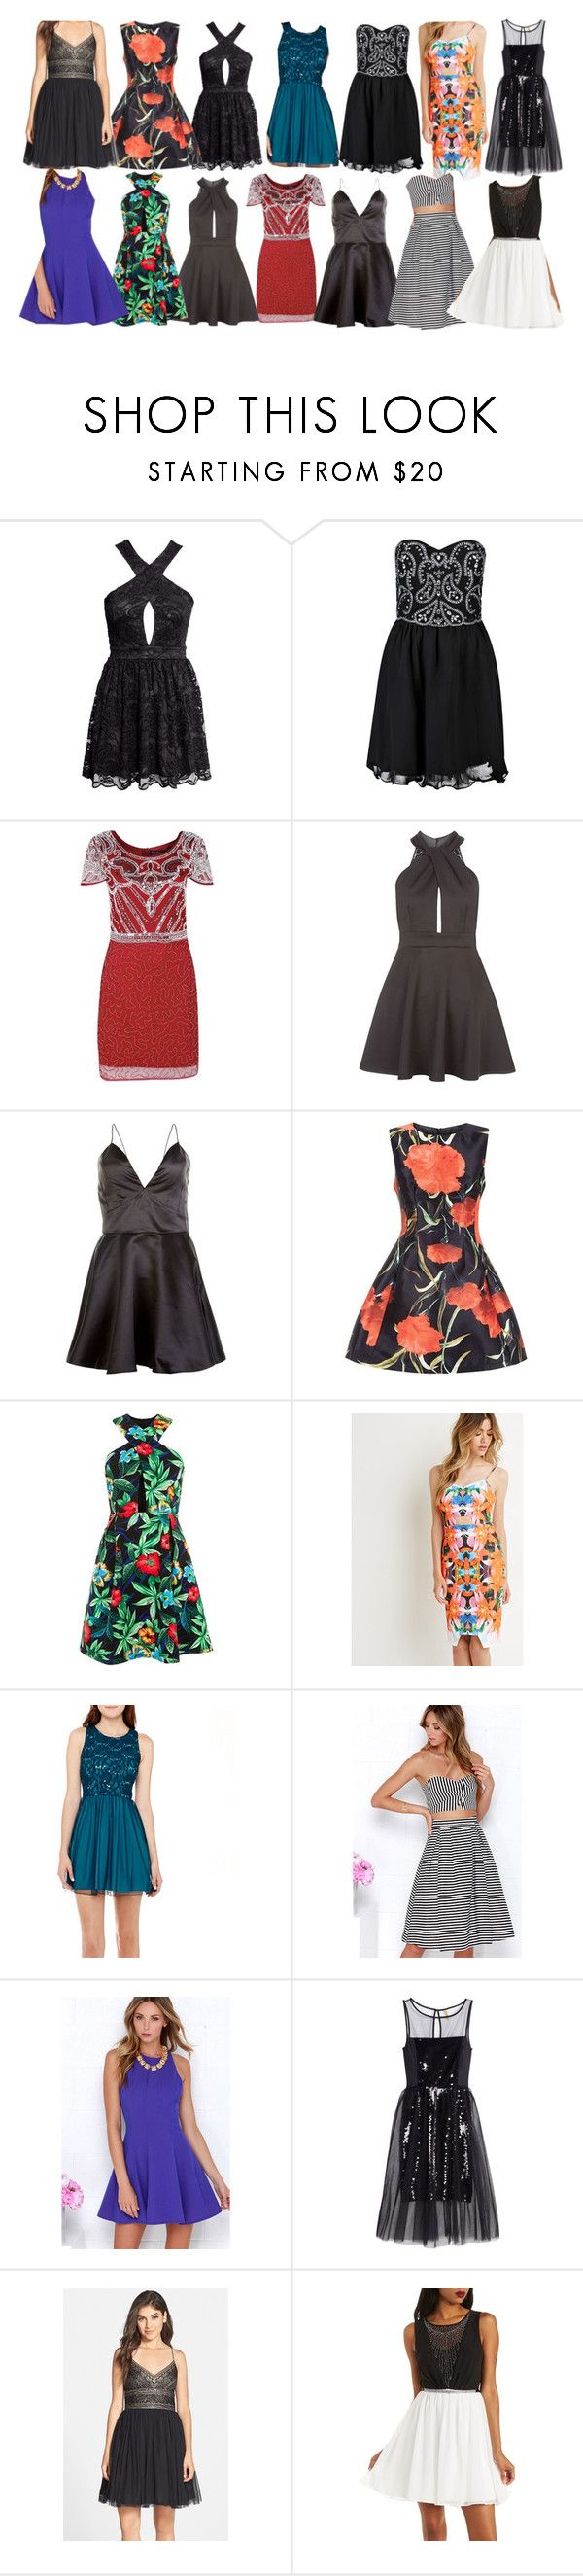 """""""Aria Montgomery inspired short formal dresses"""" by liarsstyle ❤ liked on Polyvore featuring H&M, Boohoo, John Zack, AX Paris, Girls On Film, Forever 21, Swat, LULUS, Adrianna Papell and Charlotte Russe"""